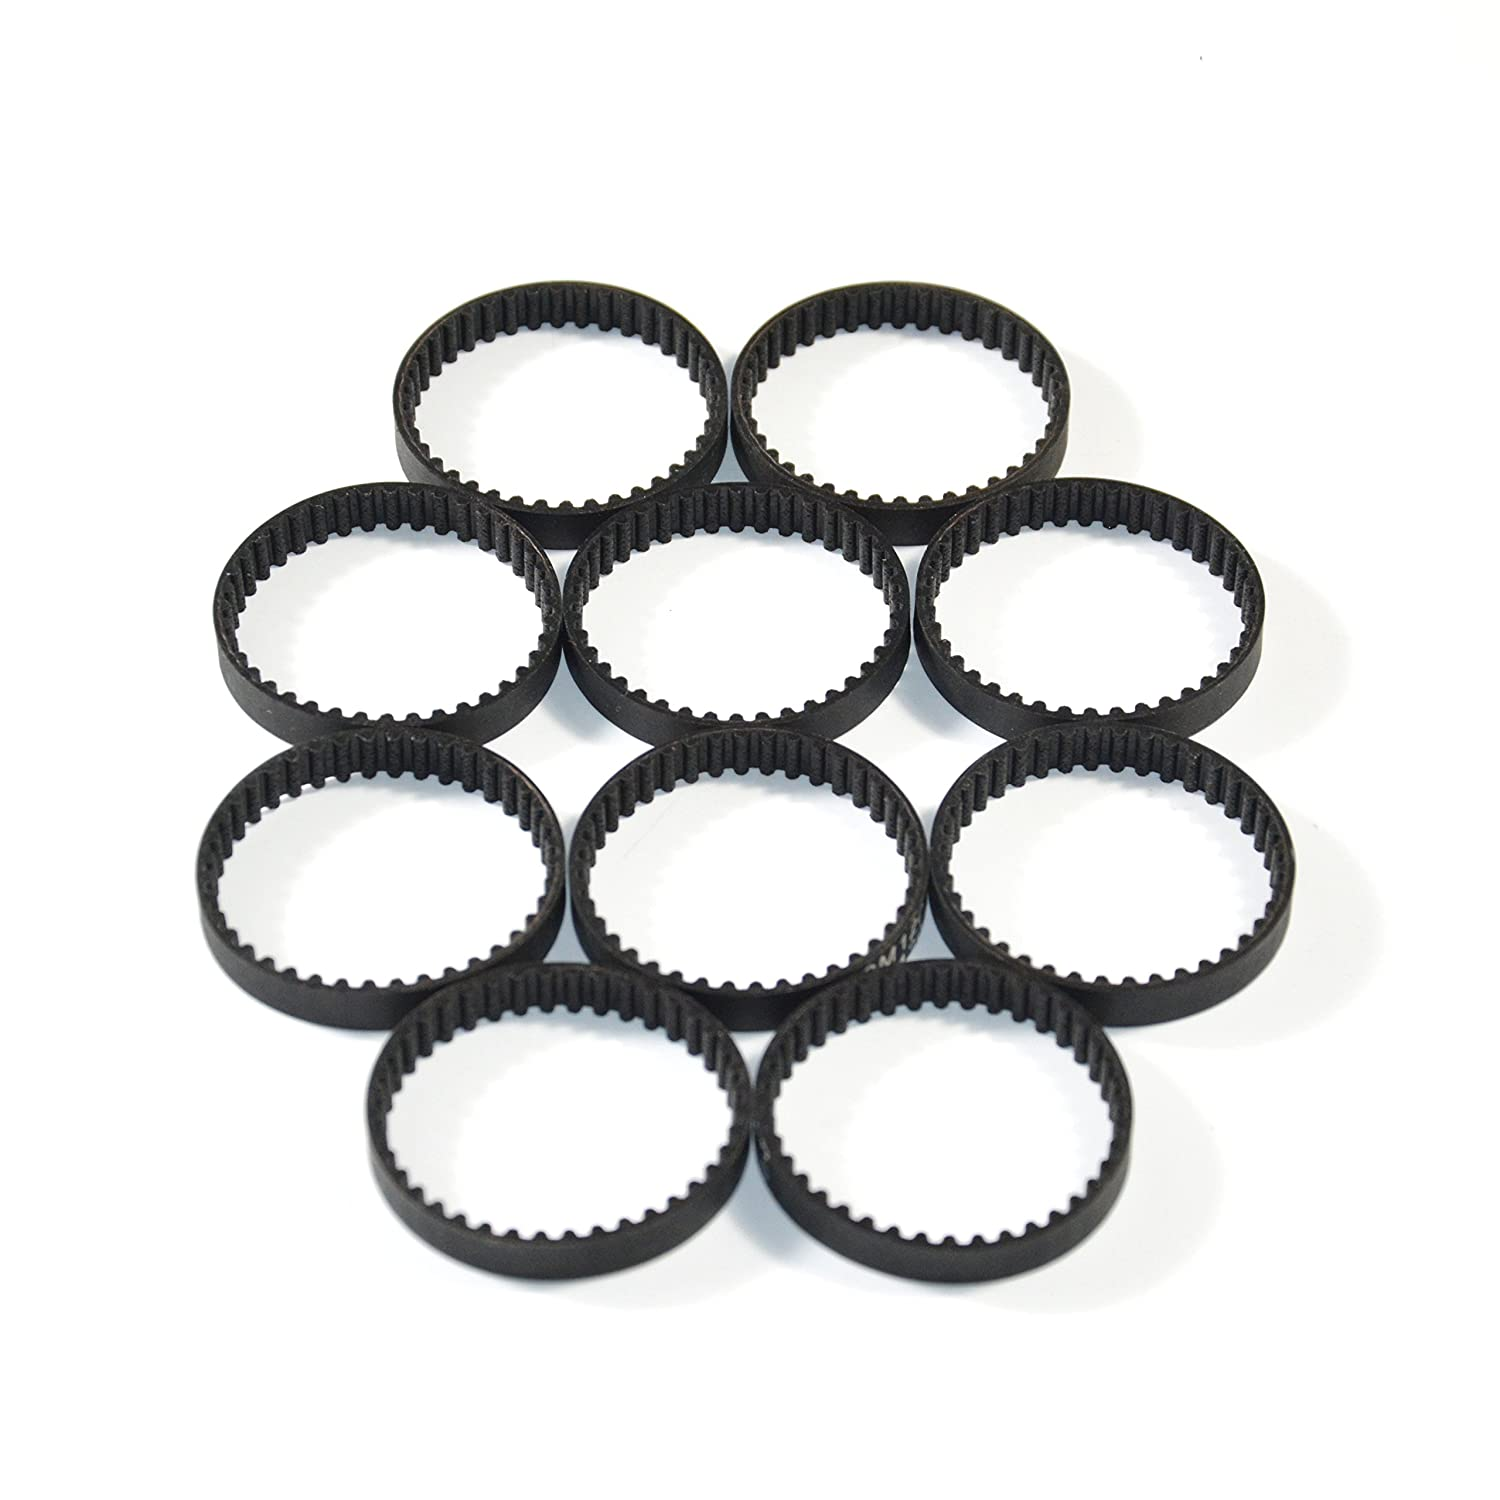 RobotDigg 194-2gt-3.5 Endless GT2 Belt 194mm Length 97 Teeth 2GT Synchronous Belt 2mm Pitch 3.5mm Width GT2 Closed Loop Timing Belt Pack of 10pcs